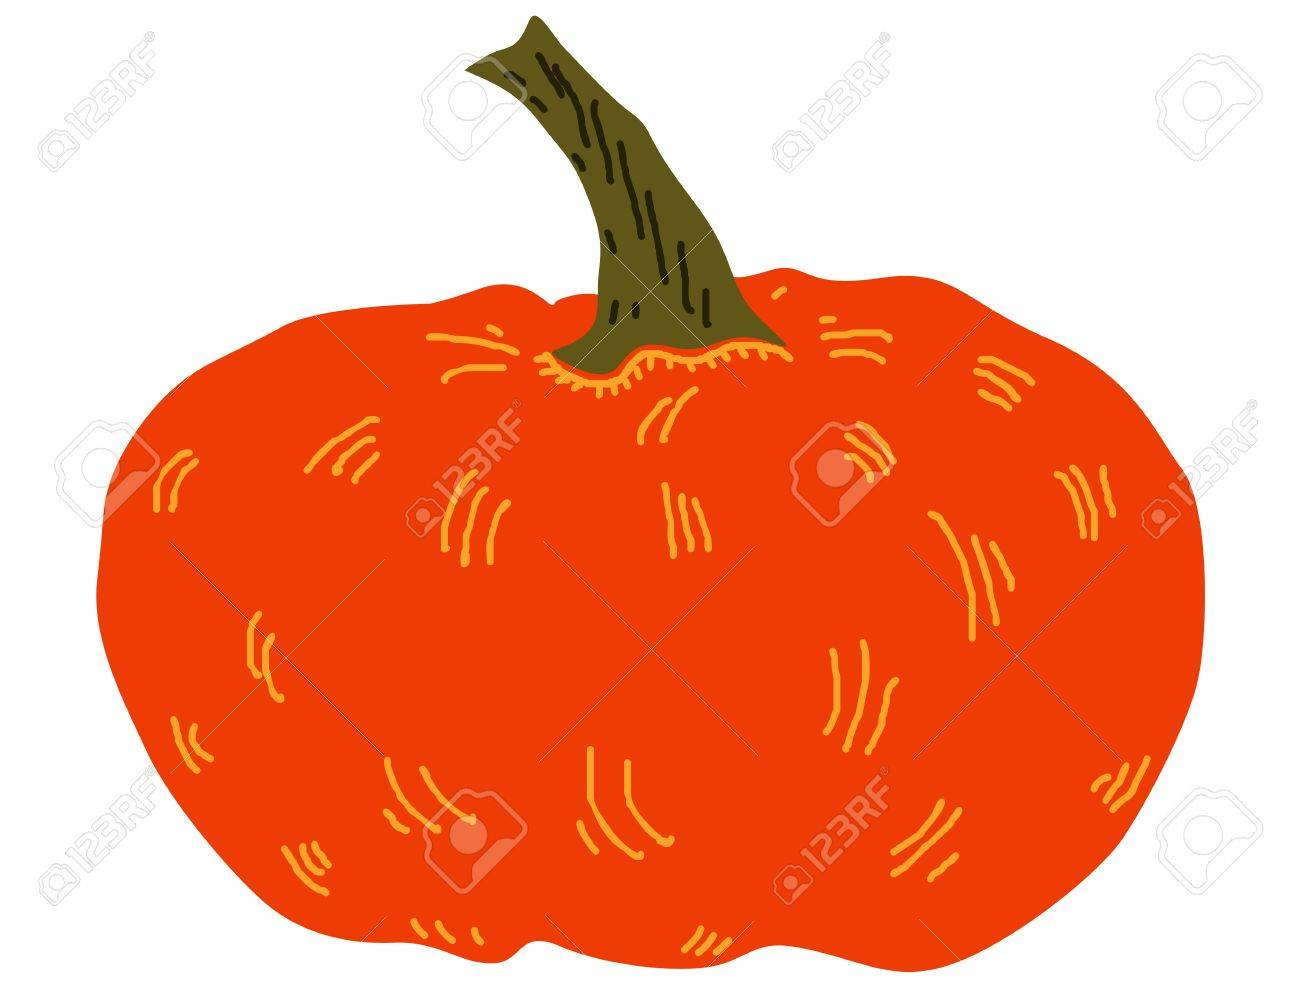 Pumpkin Stock Vector - 19443453